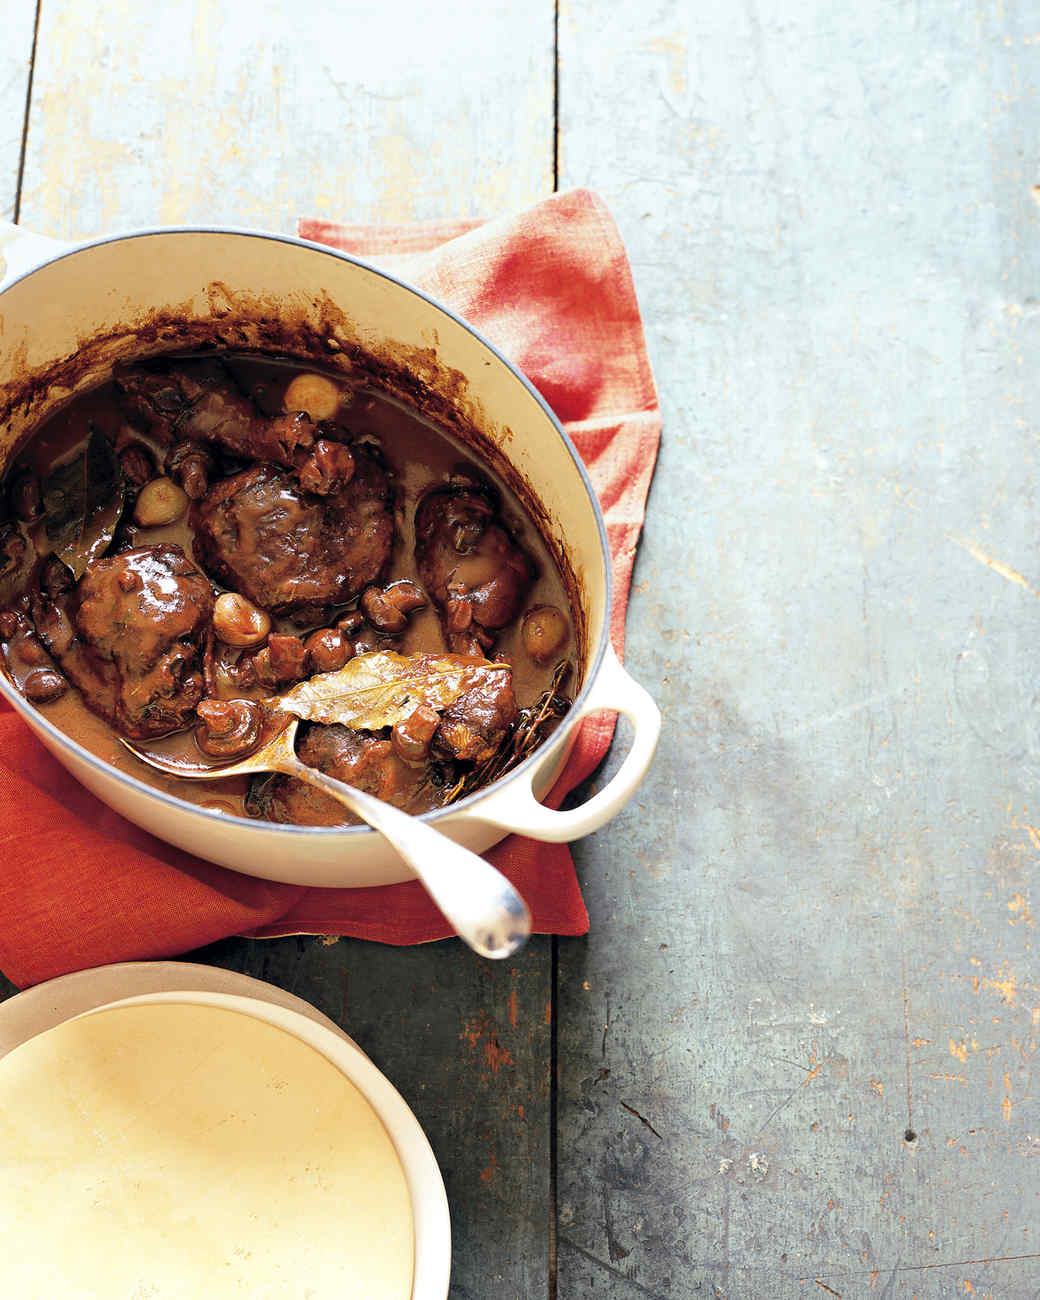 One-Pot Recipes: Make It in a Dutch Oven